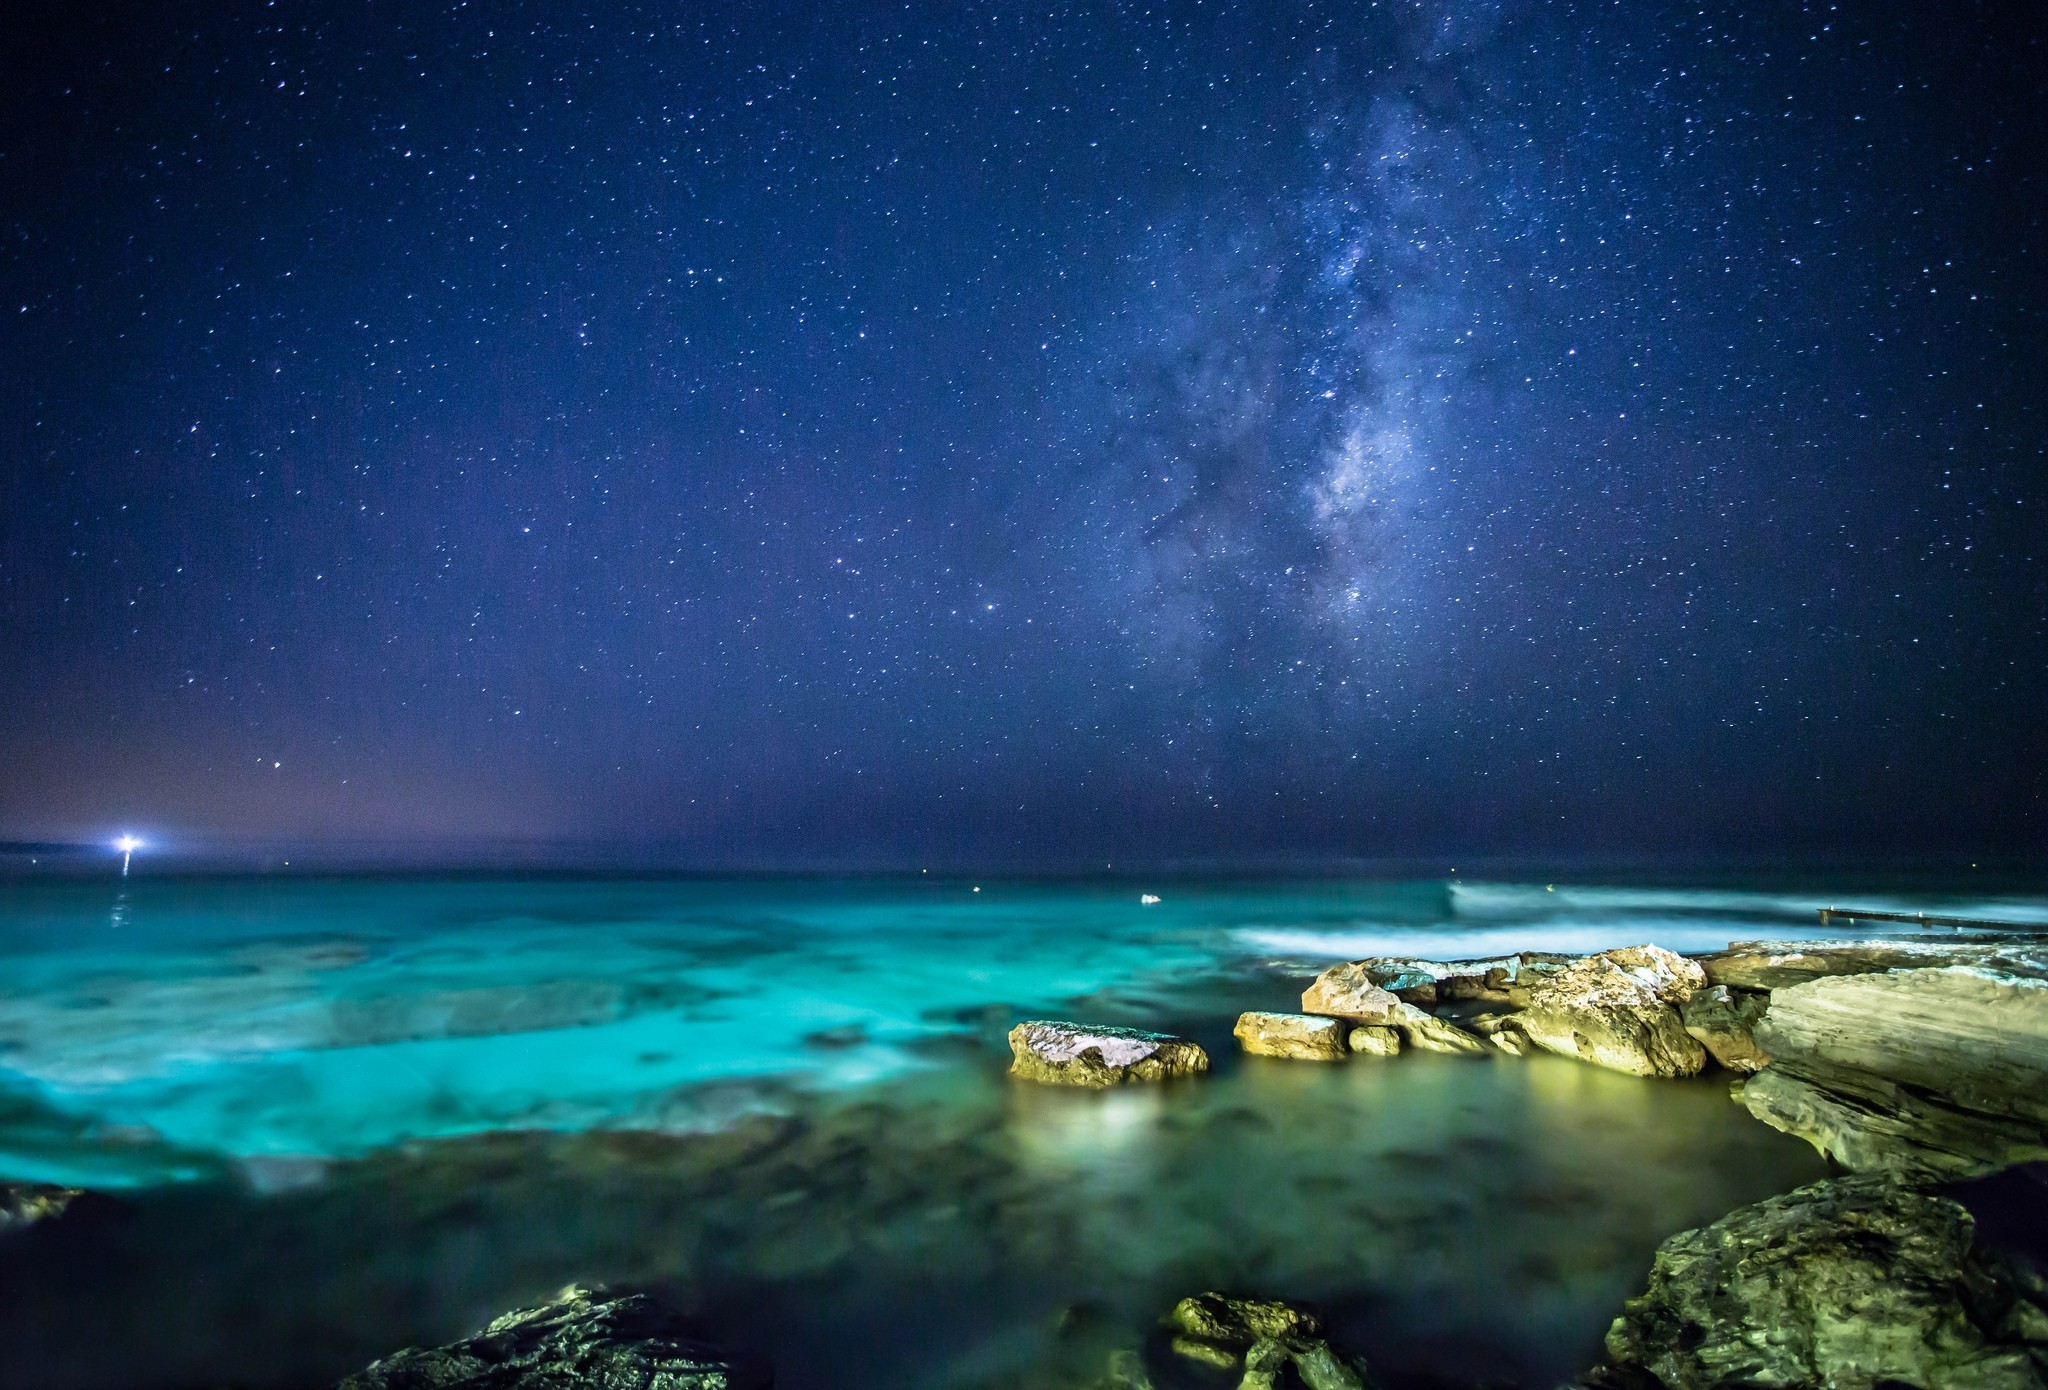 landscape, Sea, Night, Stars Wallpapers HD / Desktop and Mobile Backgrounds